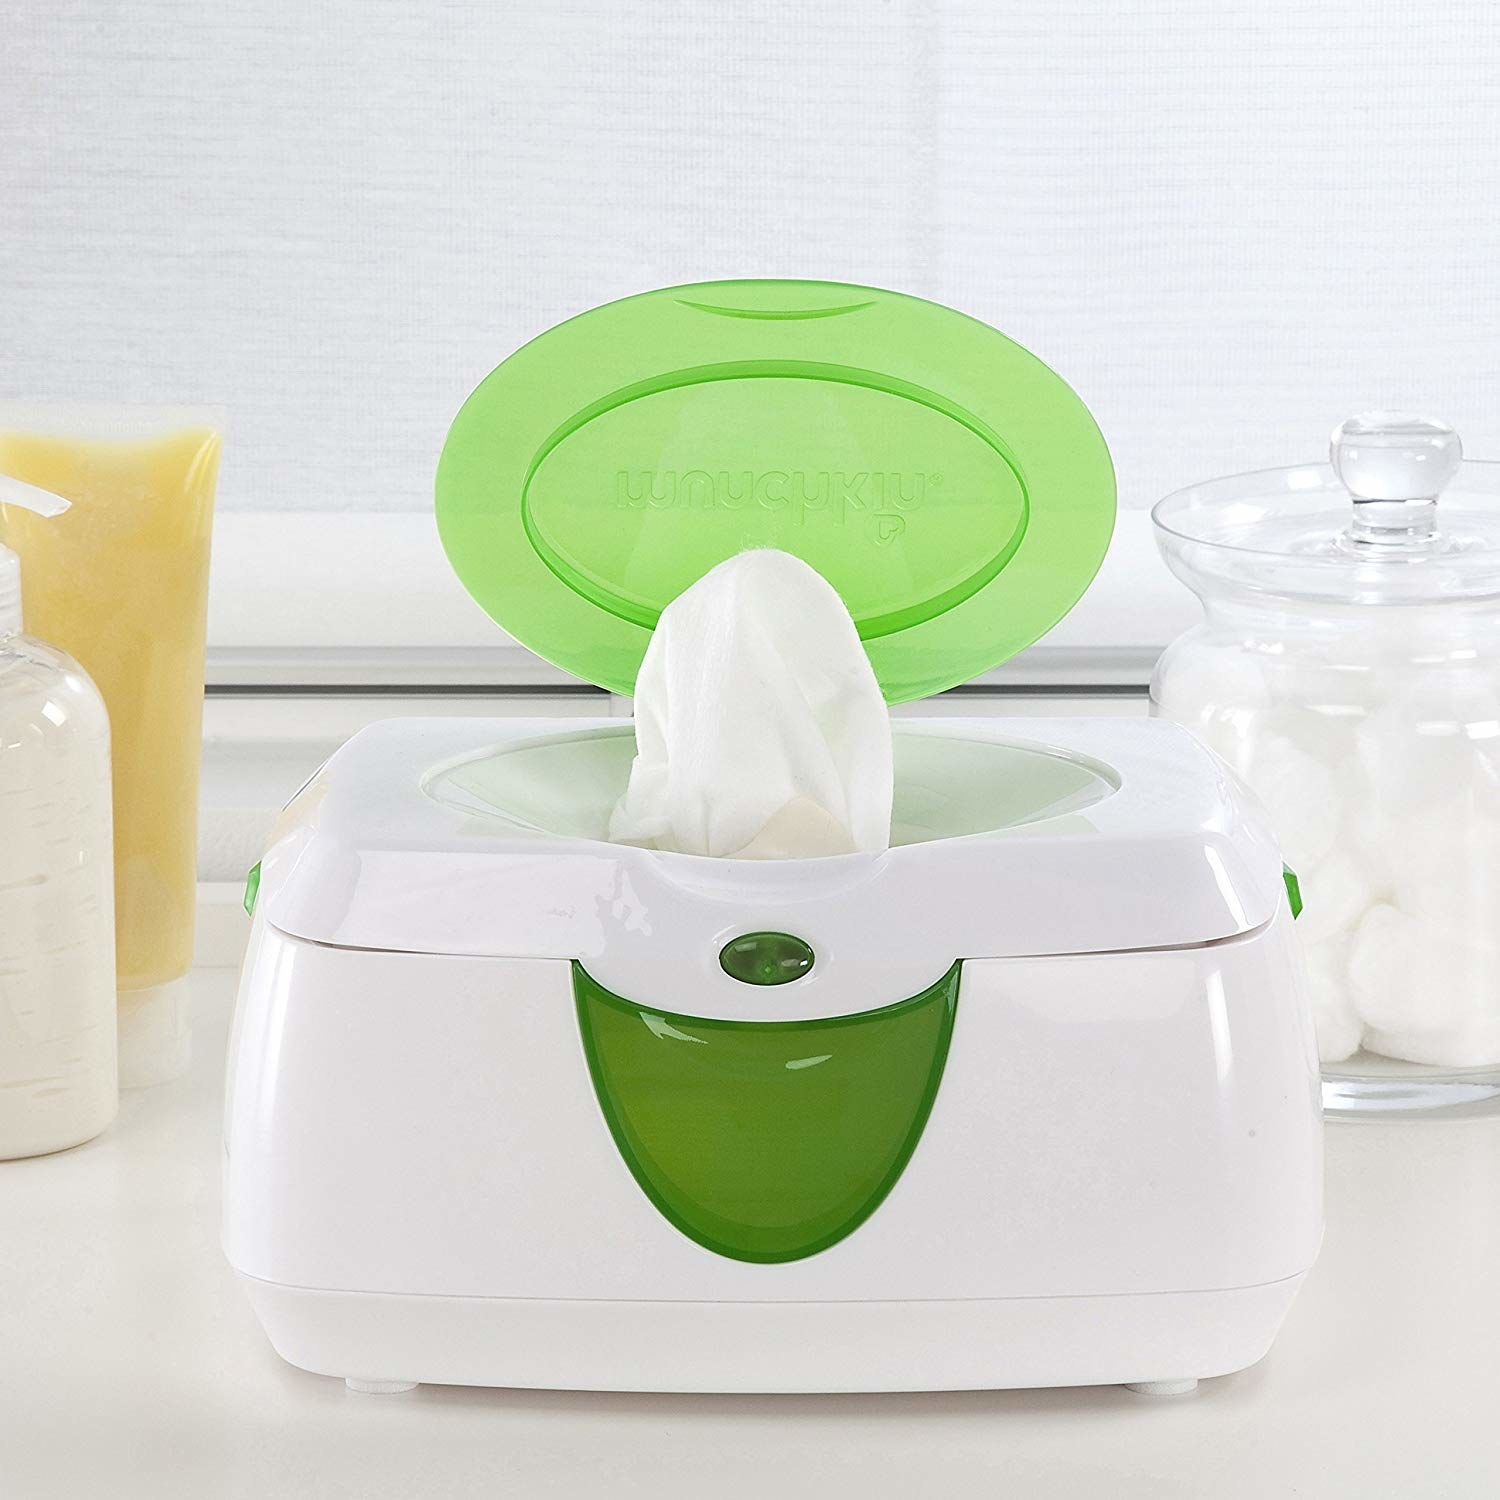 Wipe holder on counter